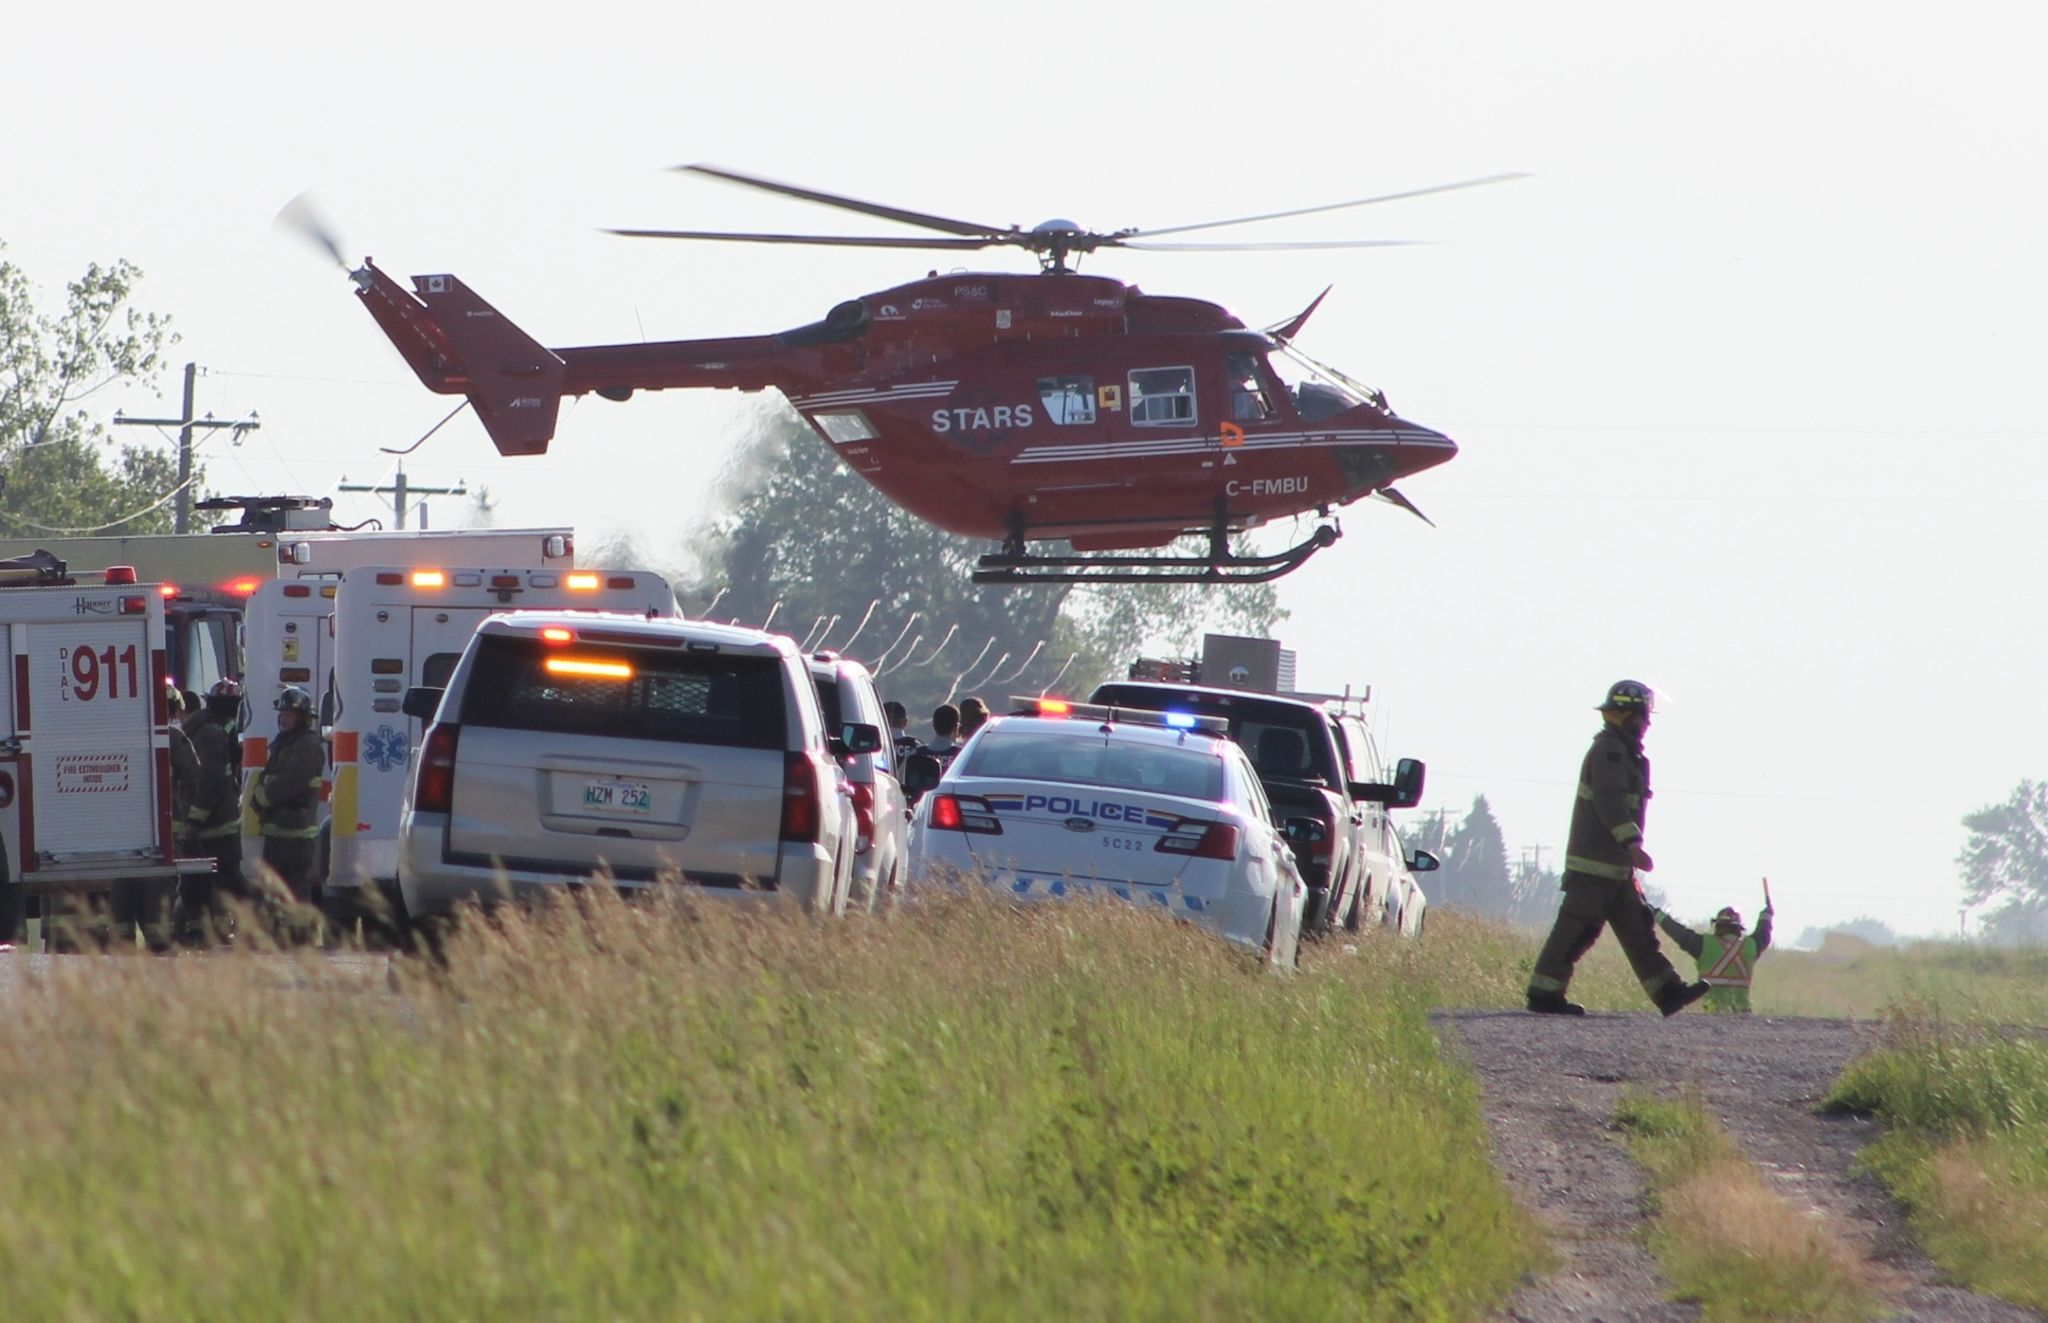 STARS departs from the scene of a collision on Wednesday night near Sarto. A spokesperson for the air ambulance service said a 17-year-old male, who had been driving a motorcycle, was transported to Winnipeg hospital in stable condition.